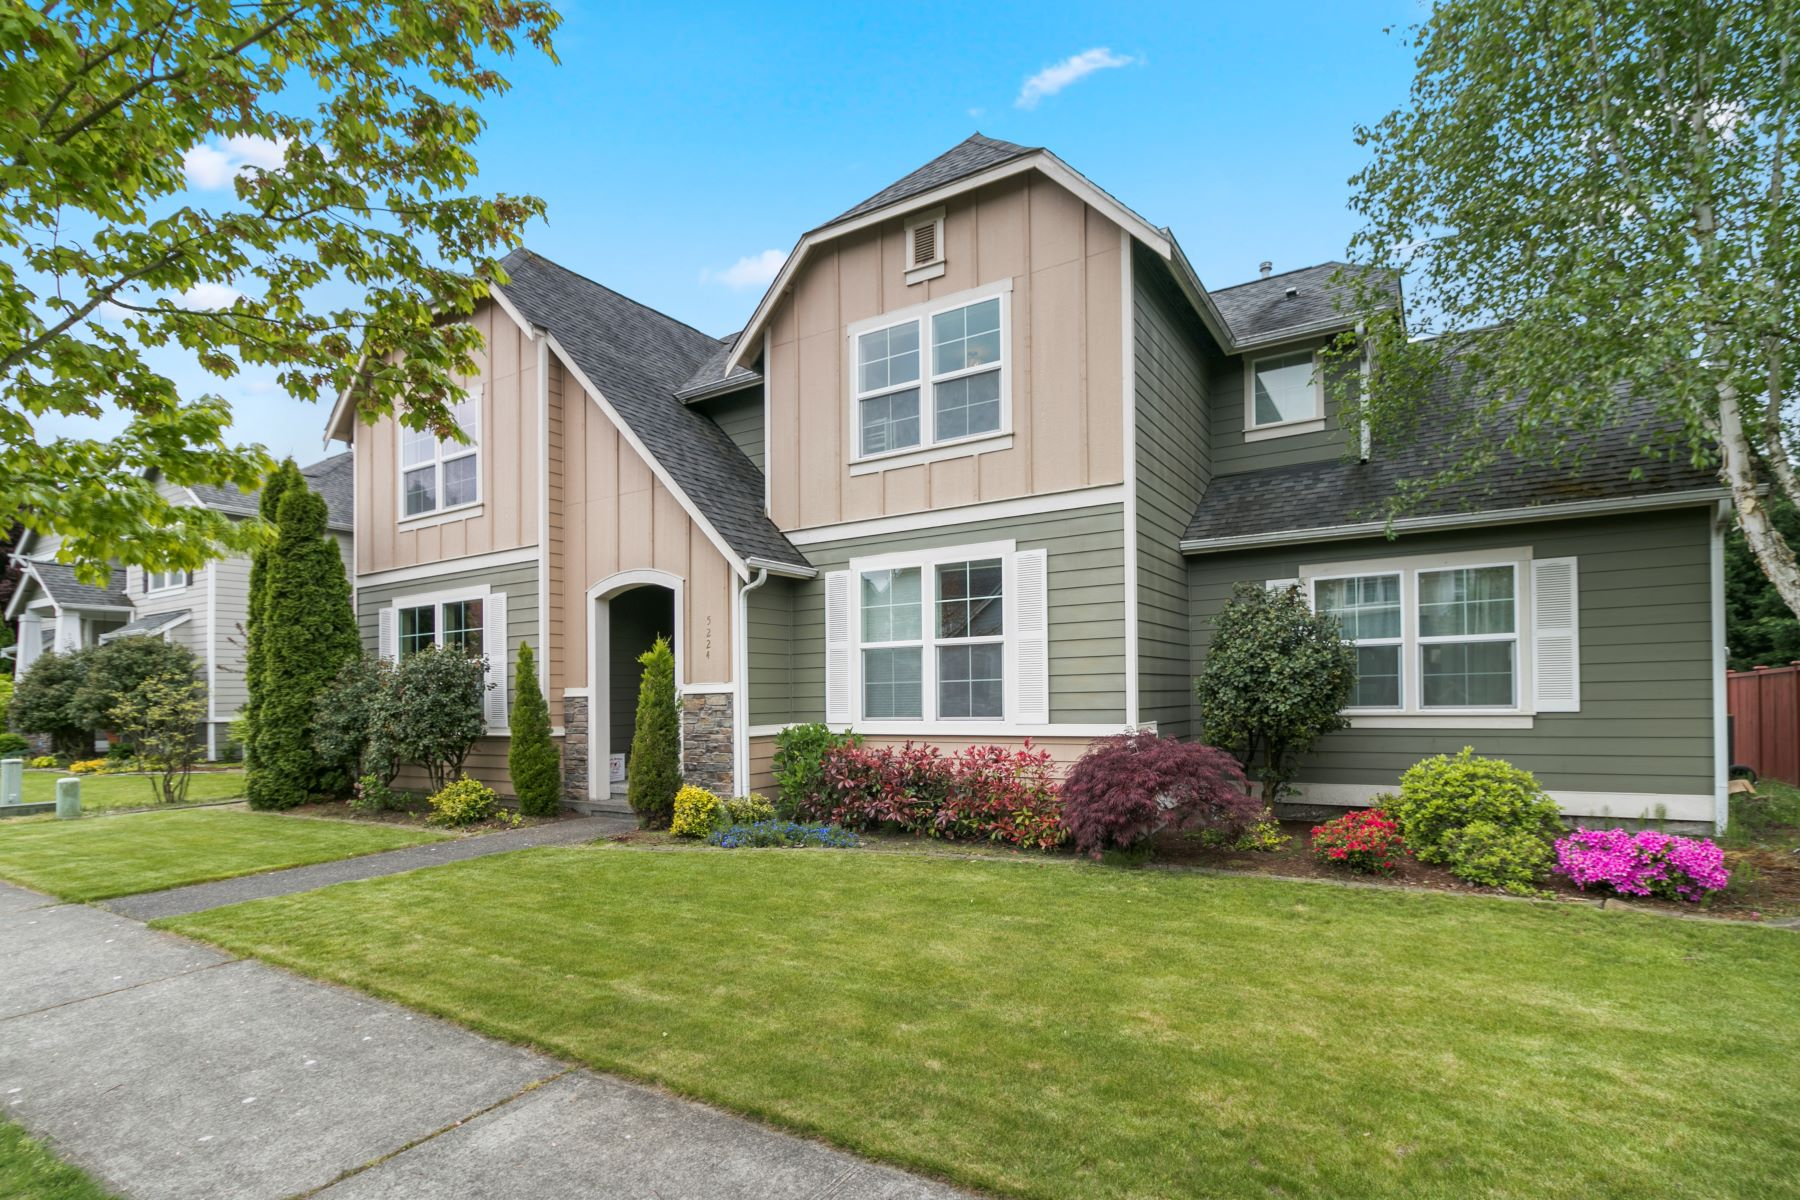 Single Family Homes for Sale at Duffenais 5224 151st Ave Court East Sumner, Washington 98390 United States